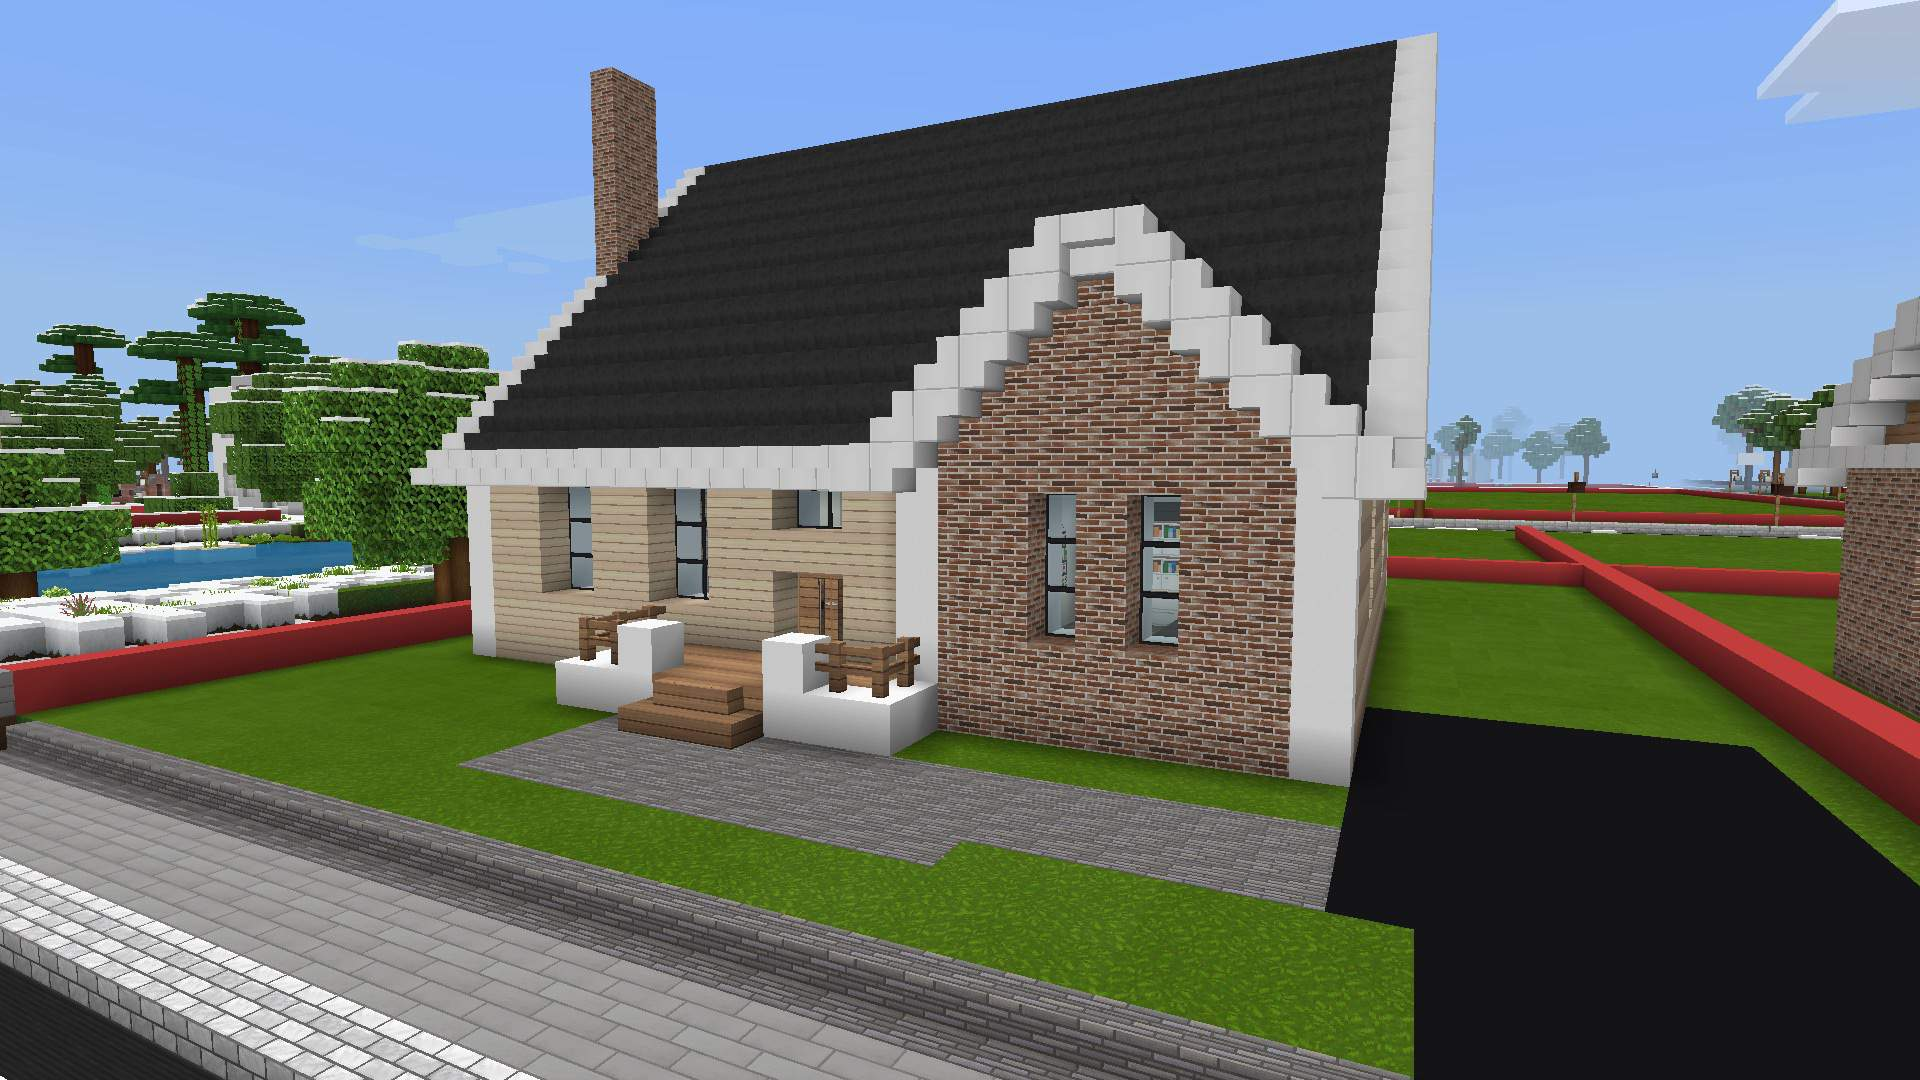 Cute little 12 story traditional house.  Minecraft Amino